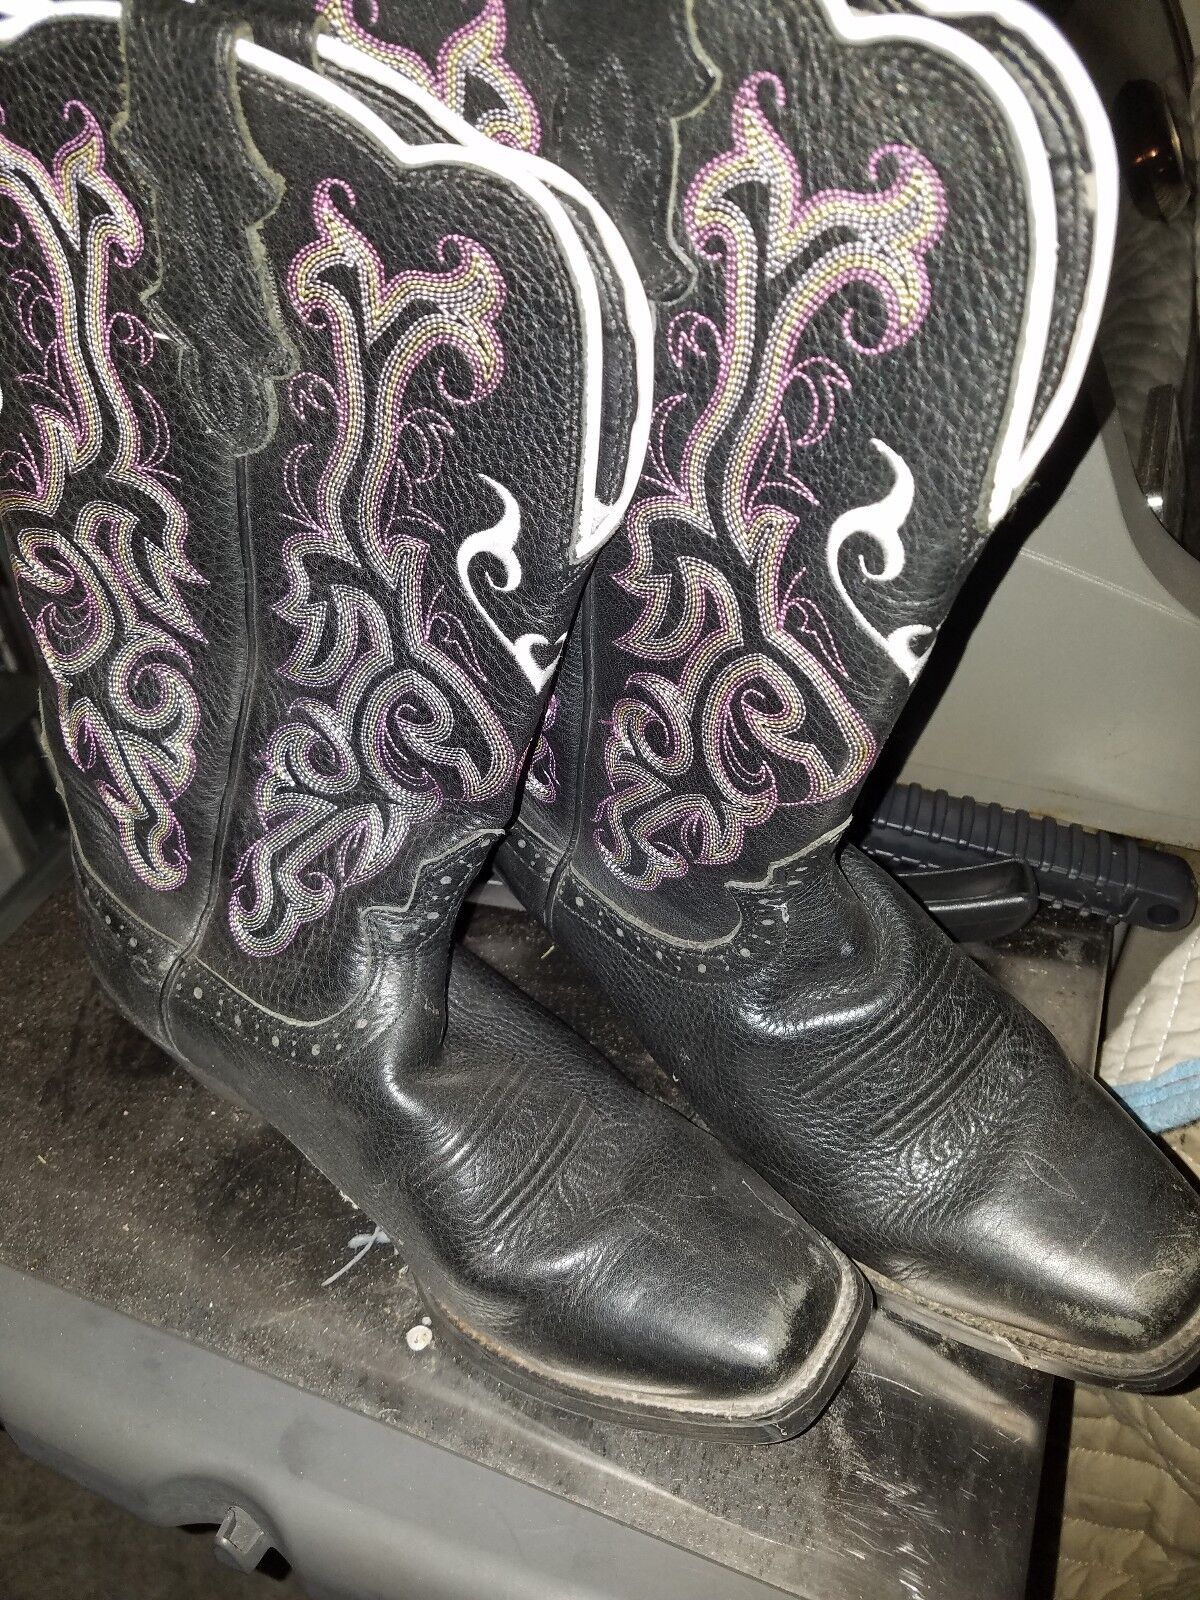 Used one time Cowboy boots